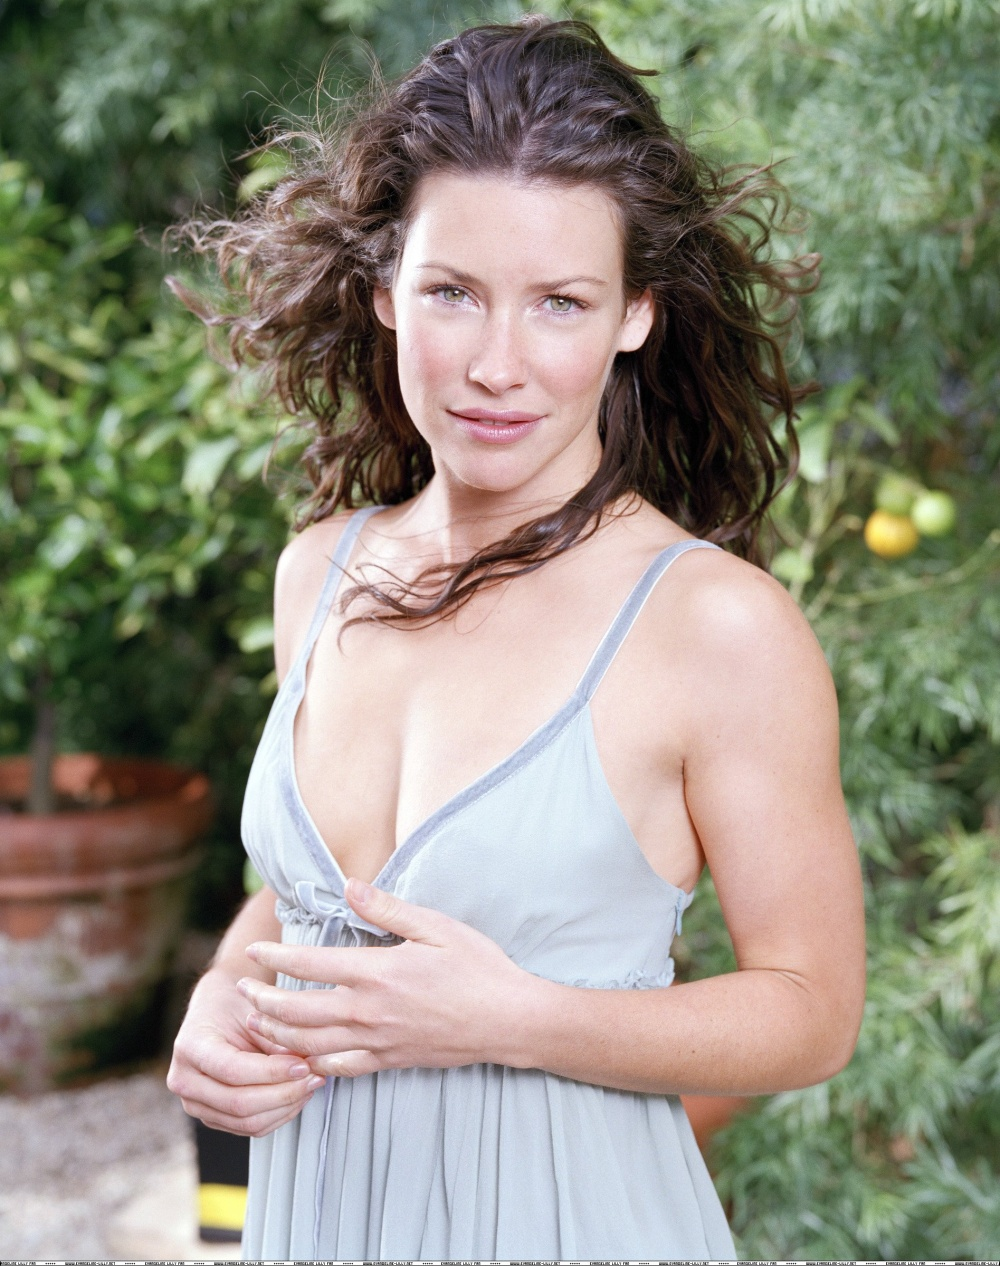 06180 nerble evangeline lilly self 02 122 355lo